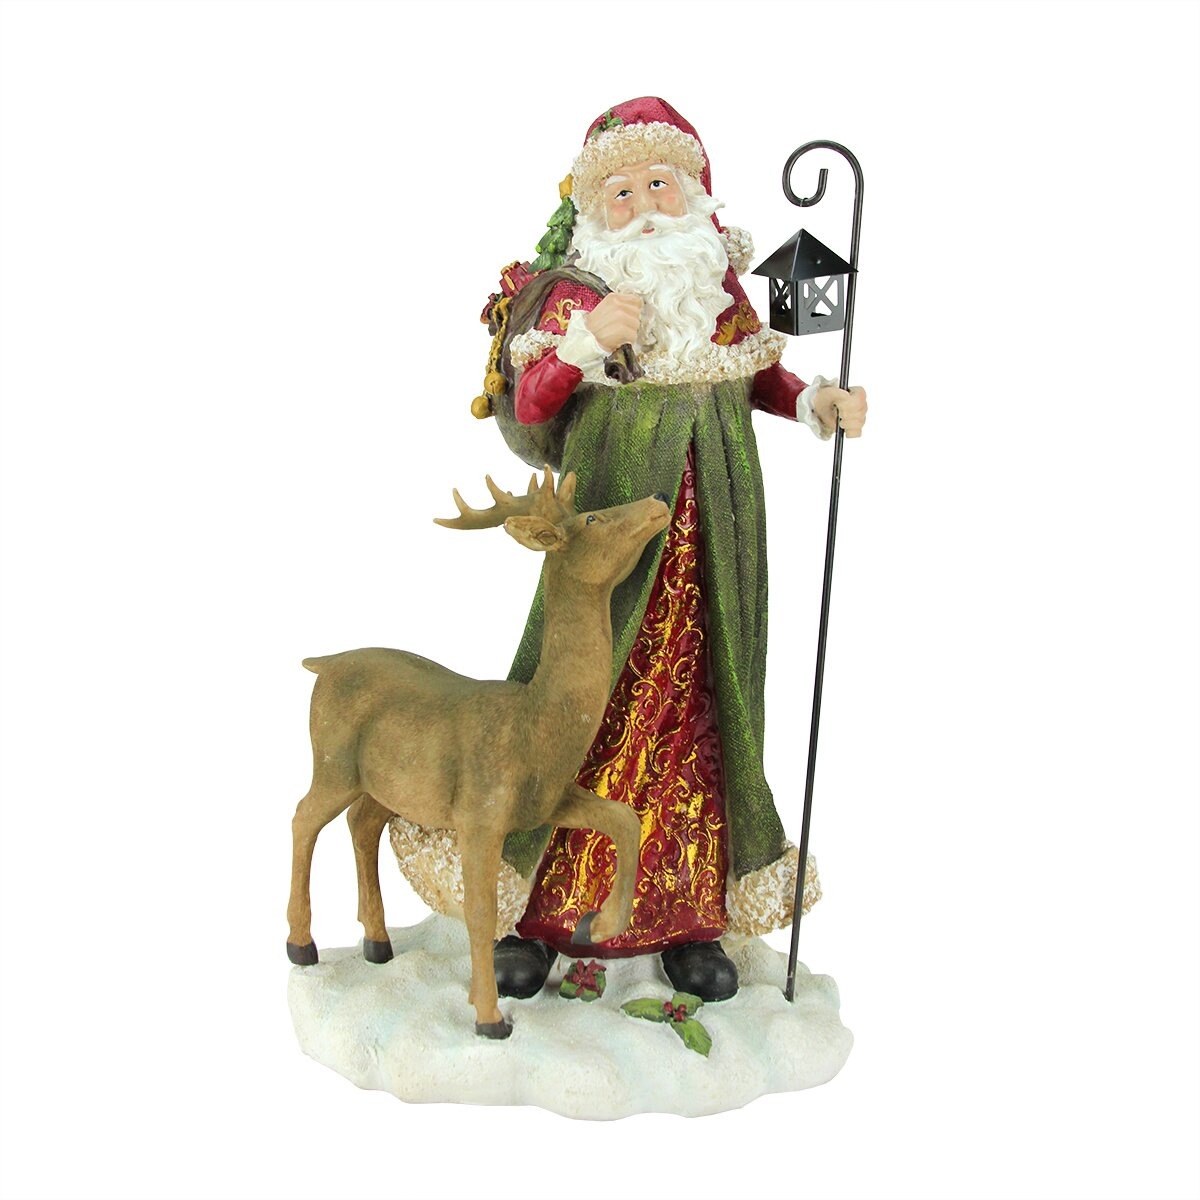 Old world lodge santa claus with lantern and reindeer